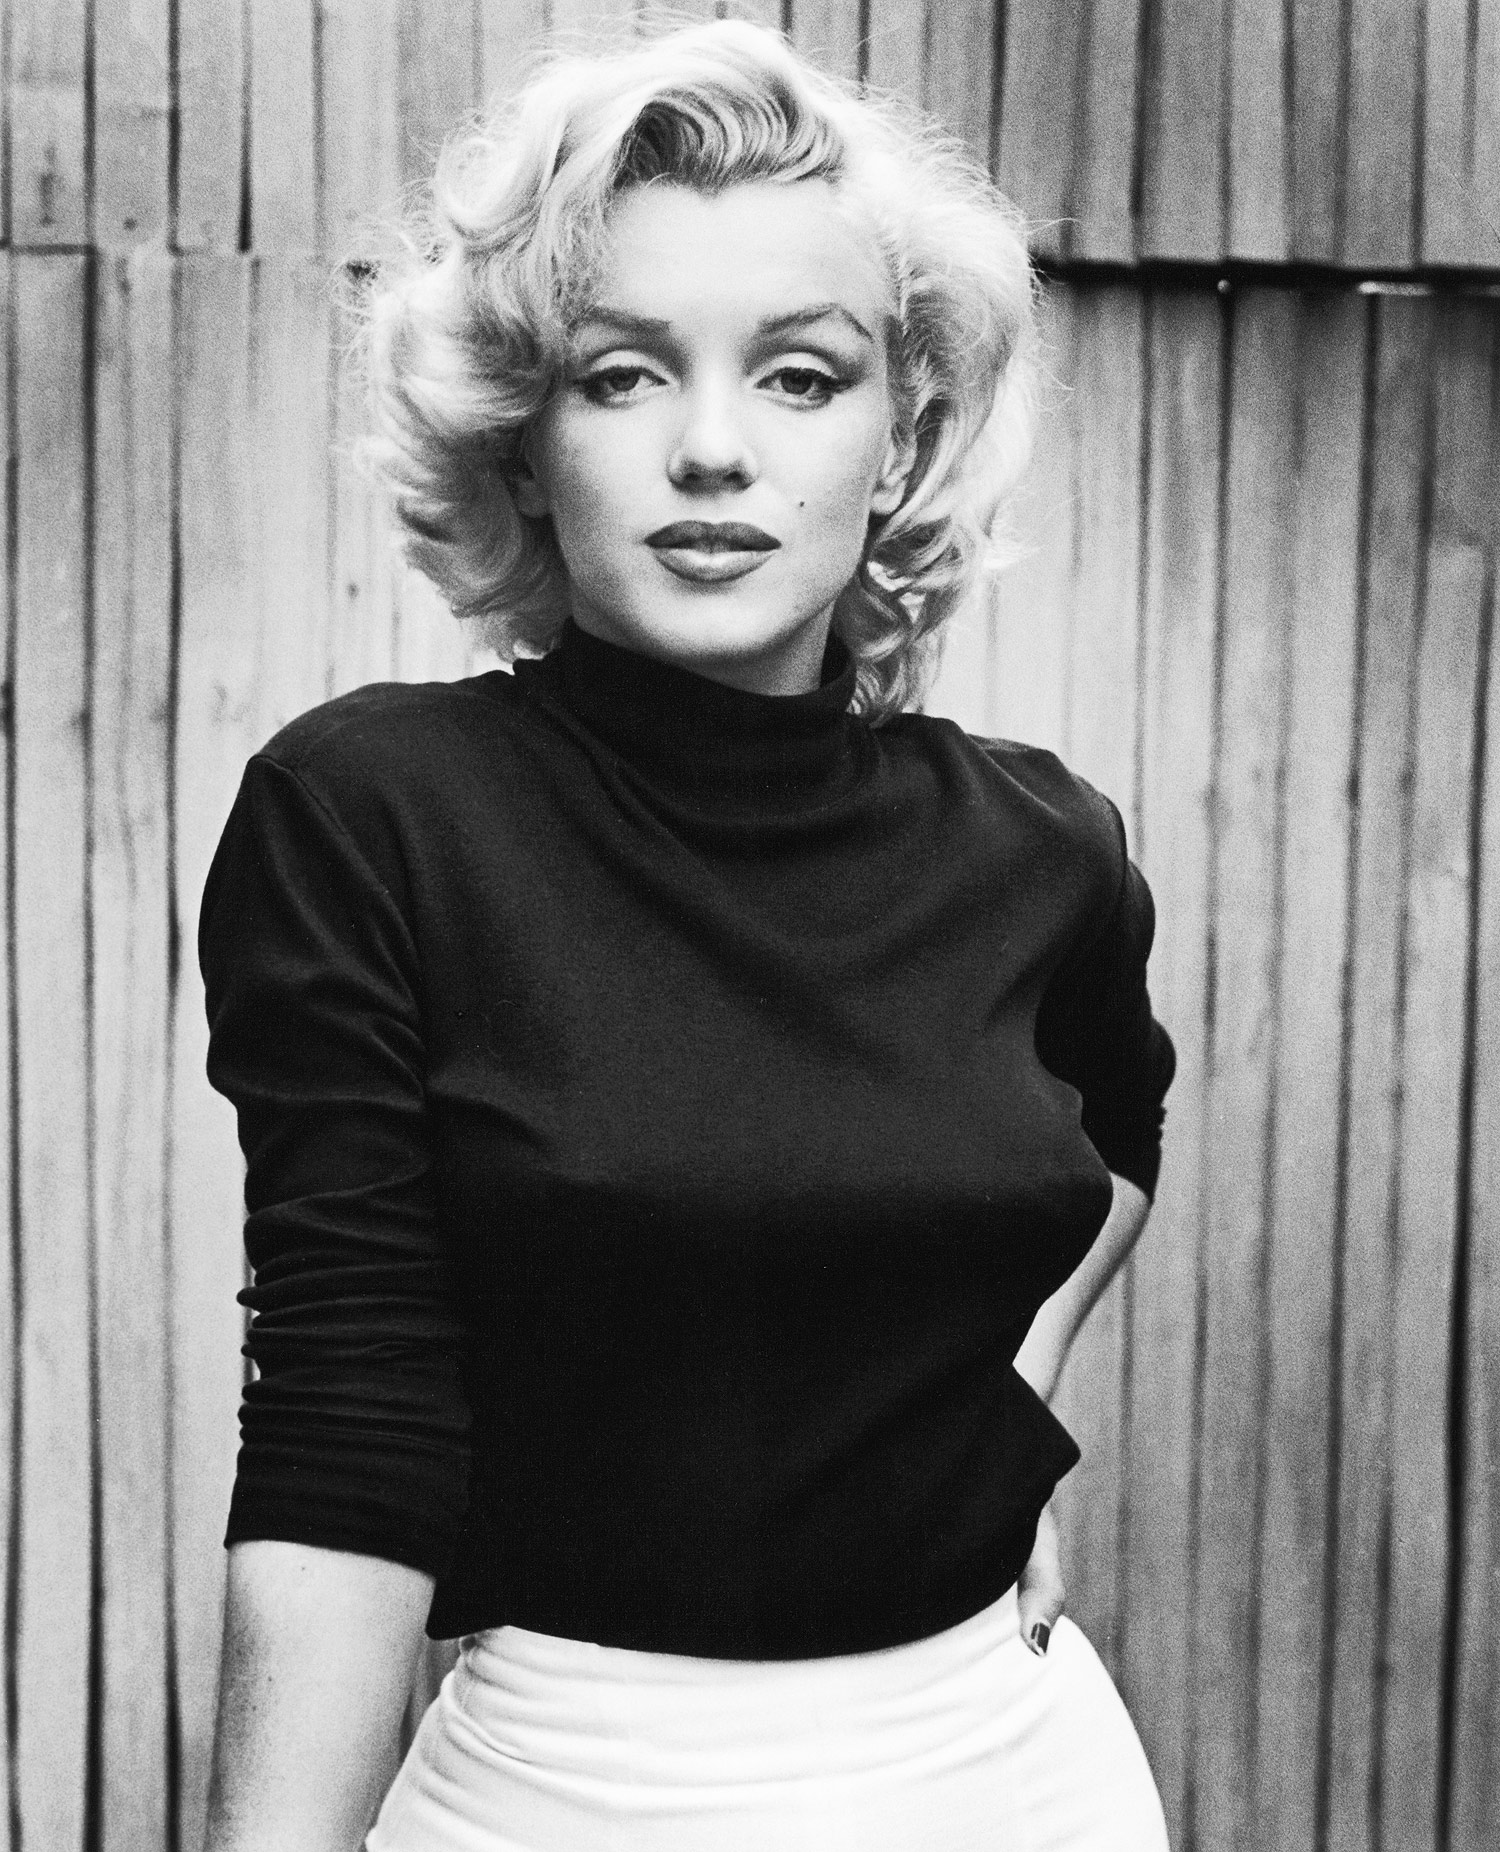 Portrait Of Marilyn Monroe